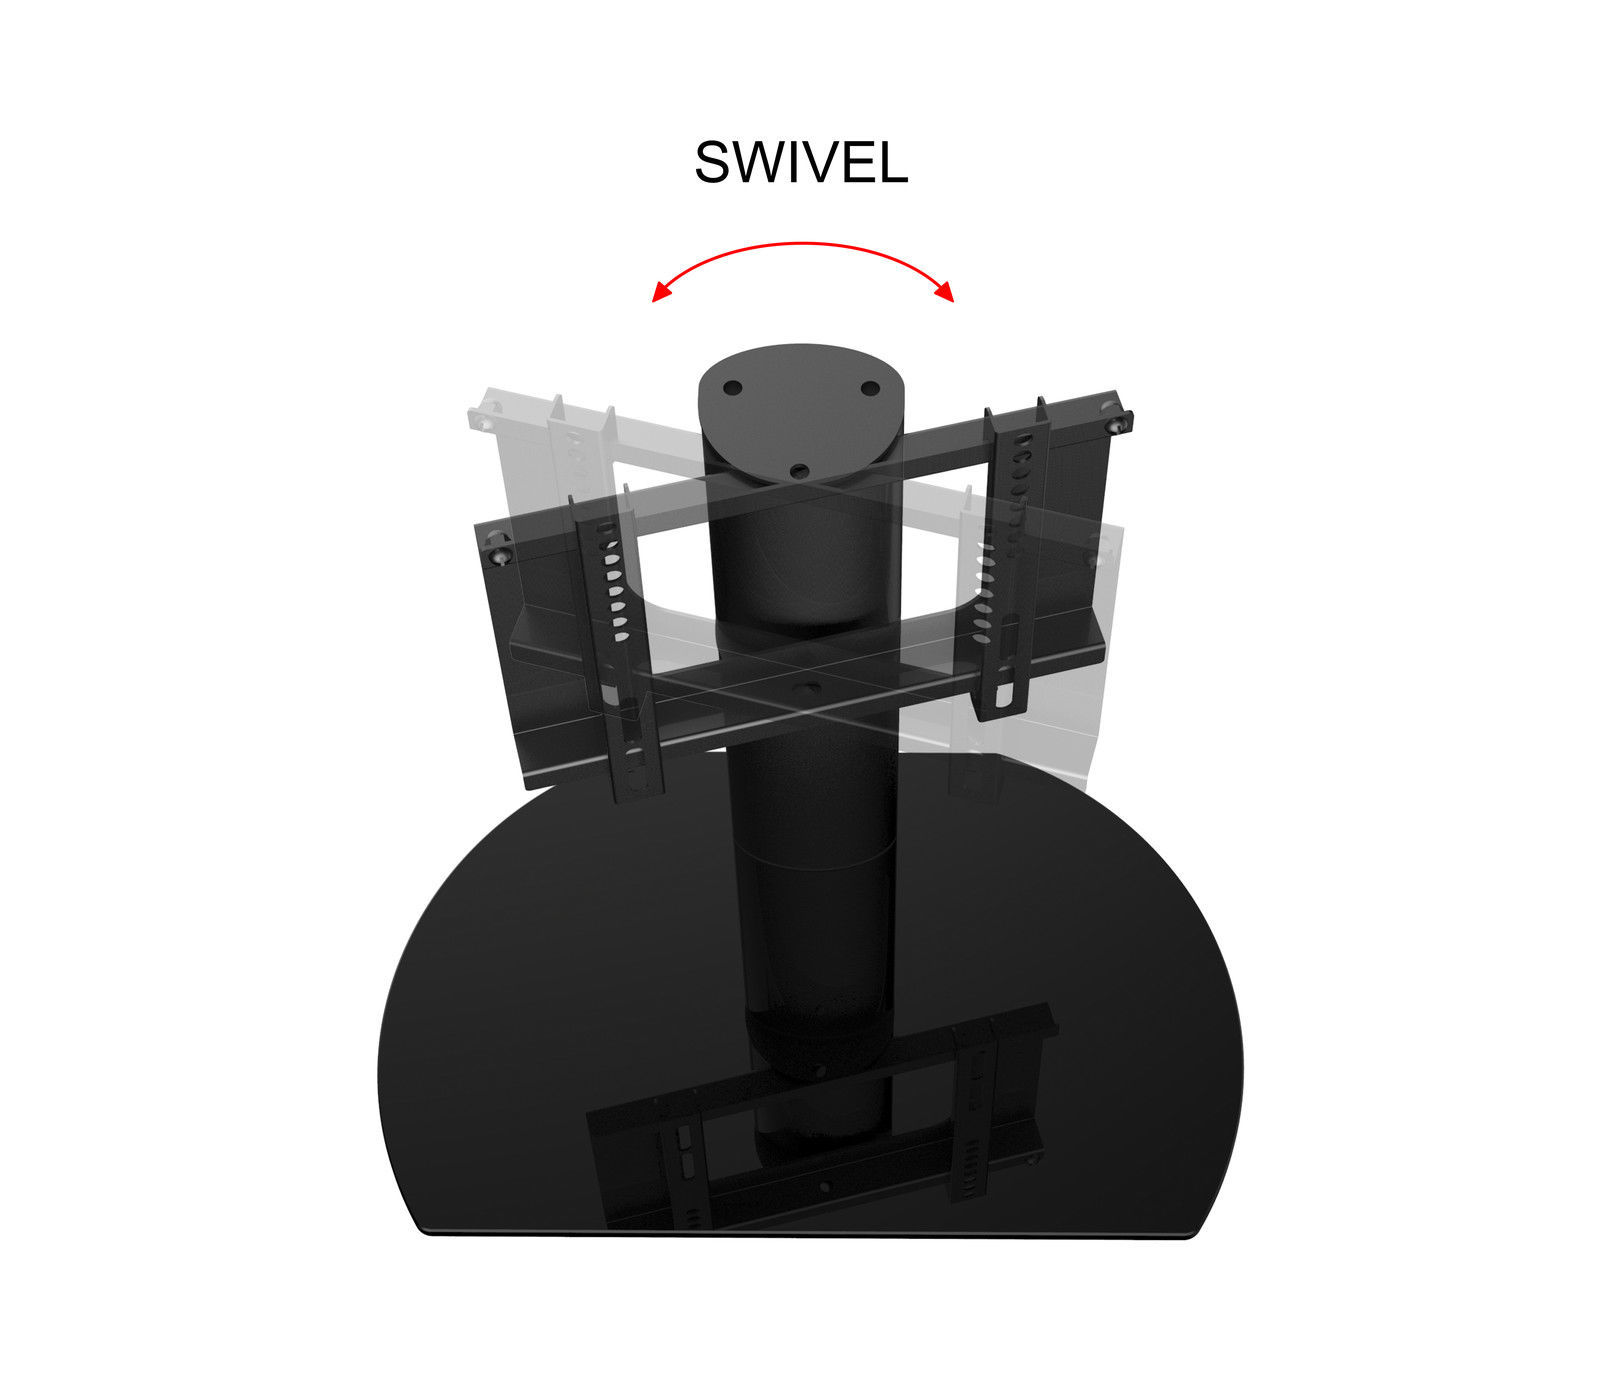 New Replacement Swivel TV Stand/Base for Magnavox 32MF339B/F7